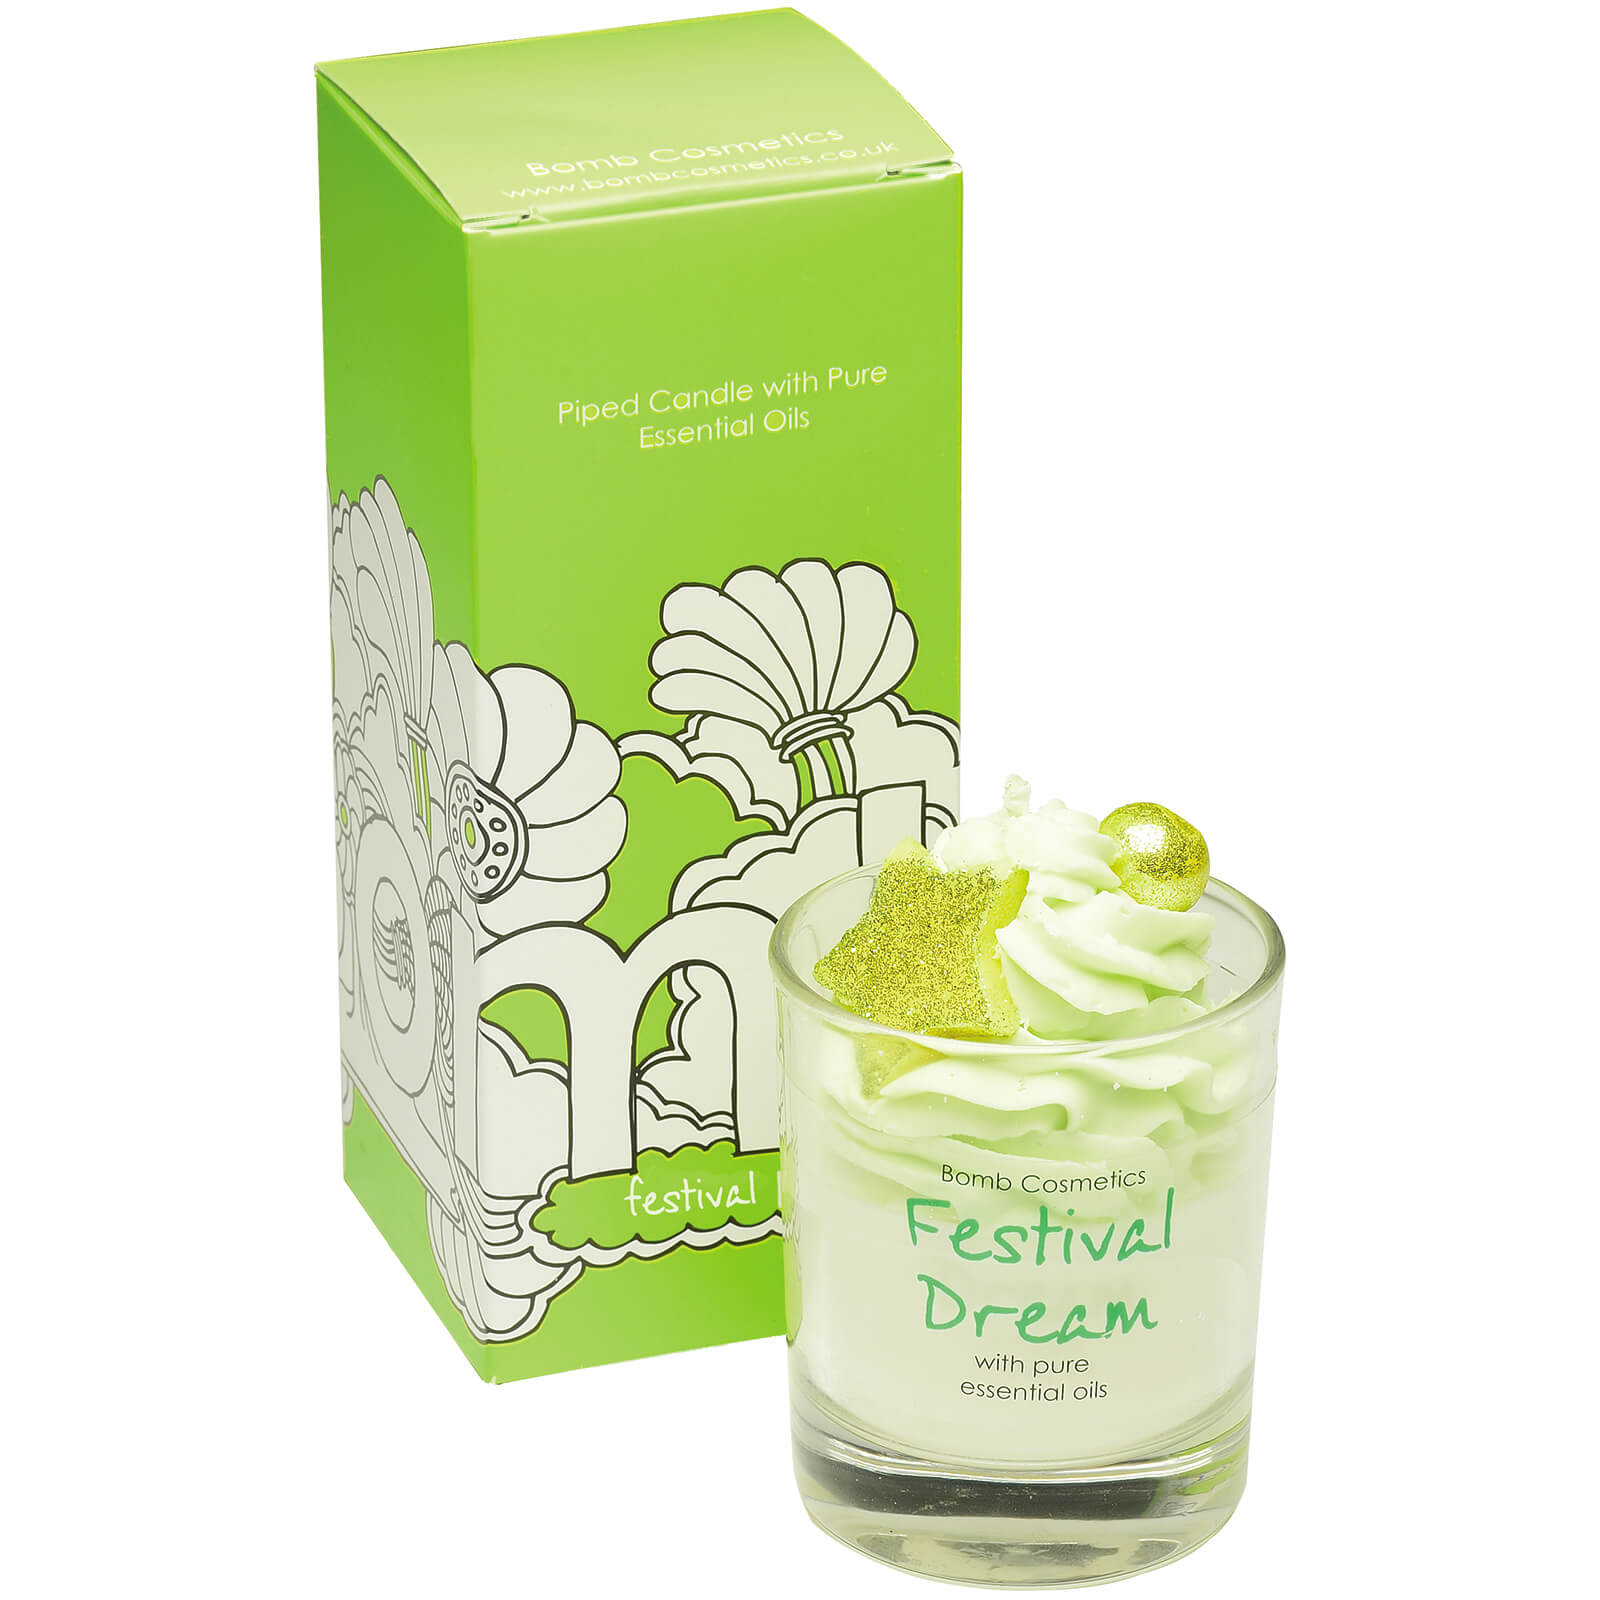 Bomb Cosmetics Festival Dream Piped Candle